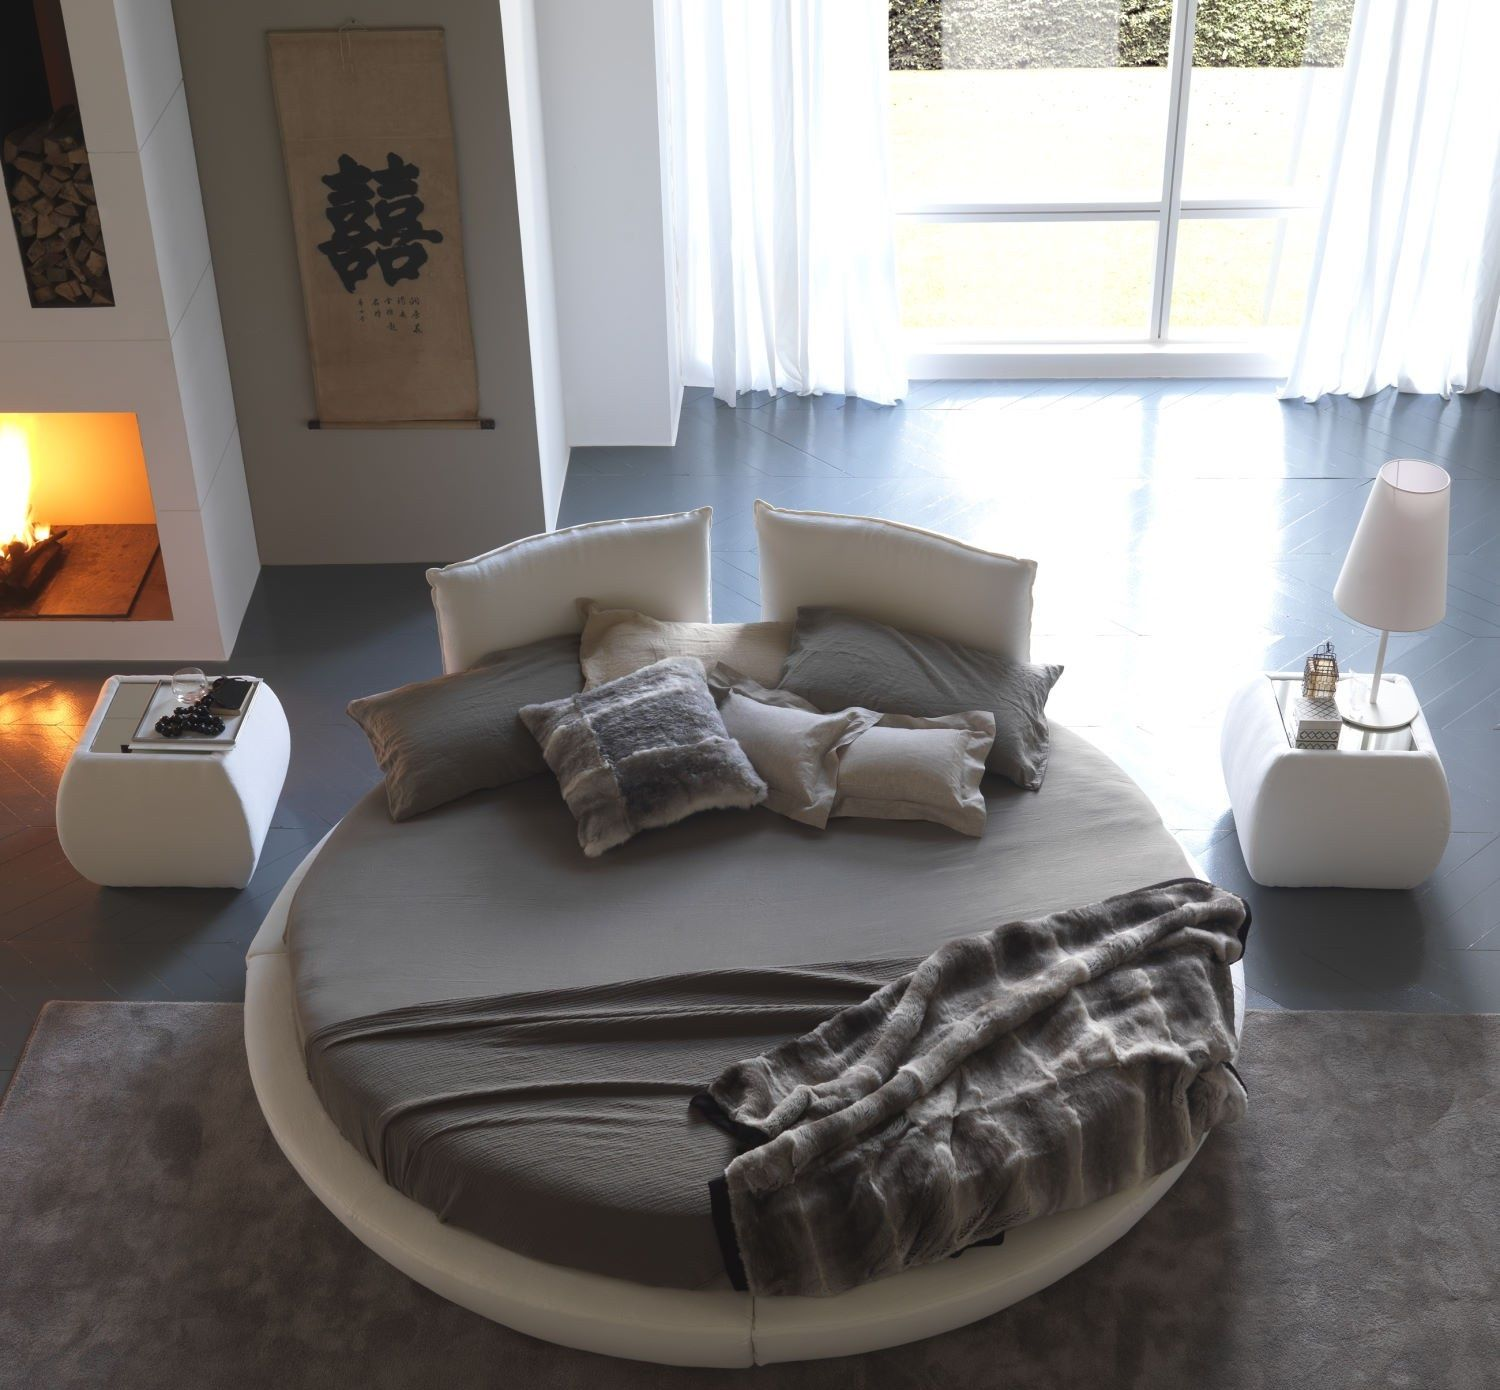 Best 25 Round Beds Ideas On Pinterest Dream Bedroom Sweet Dreams Beds And Glamorous Bedrooms